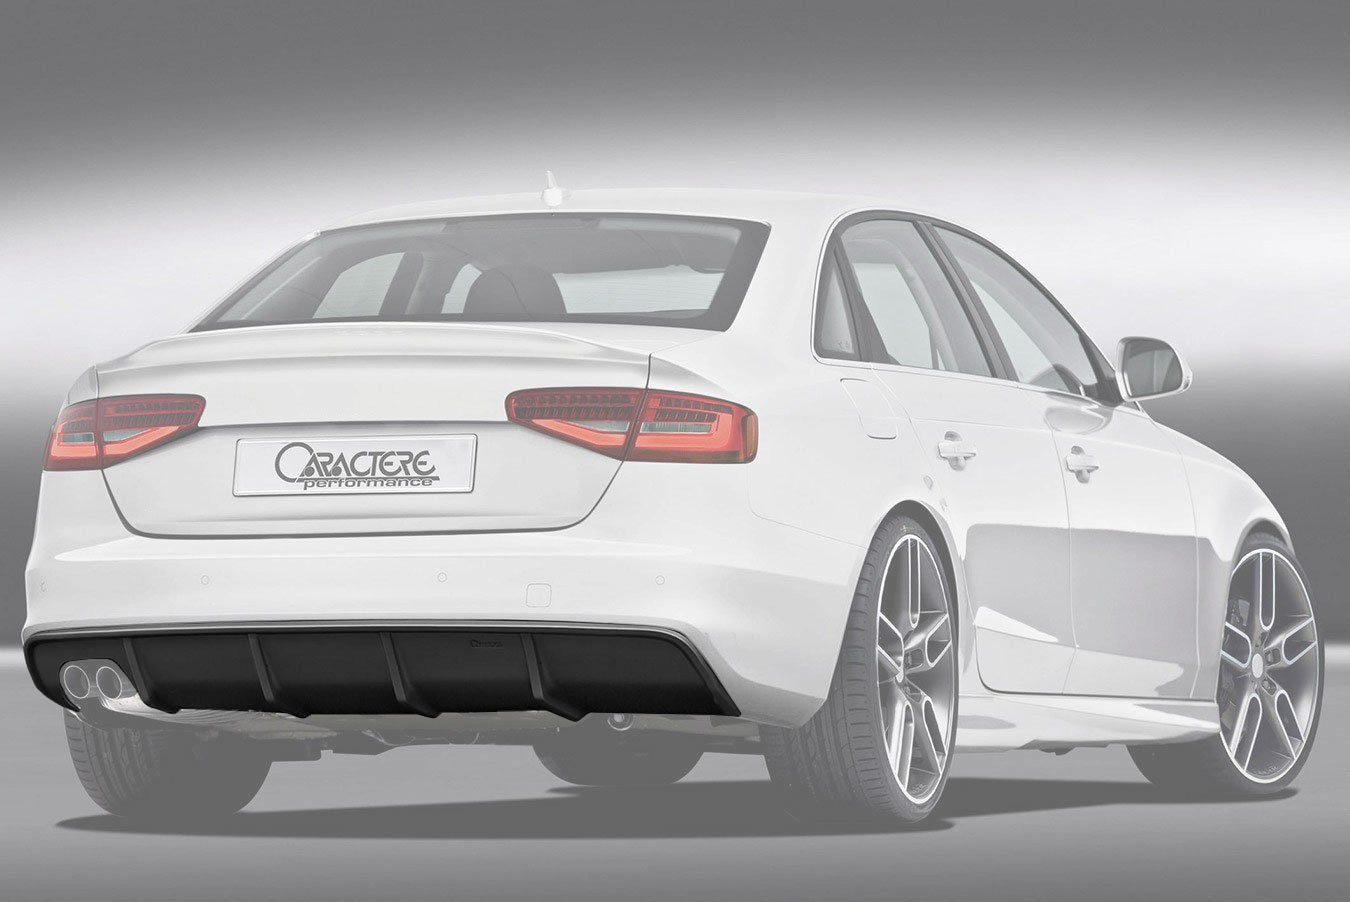 Caractere Rear Diffuser With 1 Large Cutting Fits Audi A4 B8 5 2 0 Tdi 1 8 2 0 Tfsi Bk Motorsport